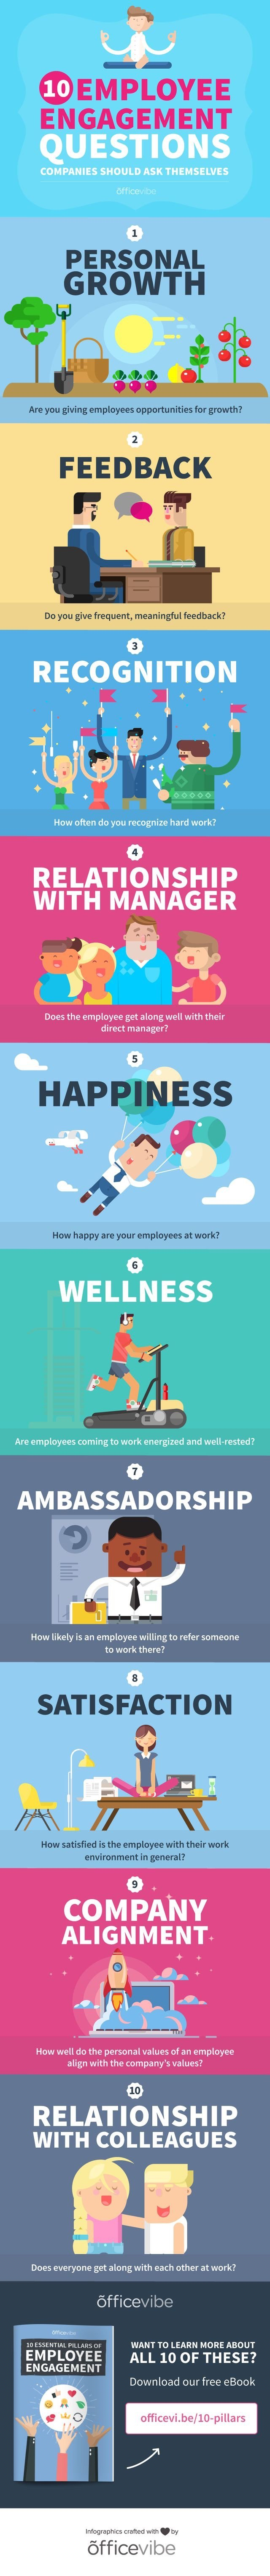 Ten employee engagement questions companies should ask #Infographic